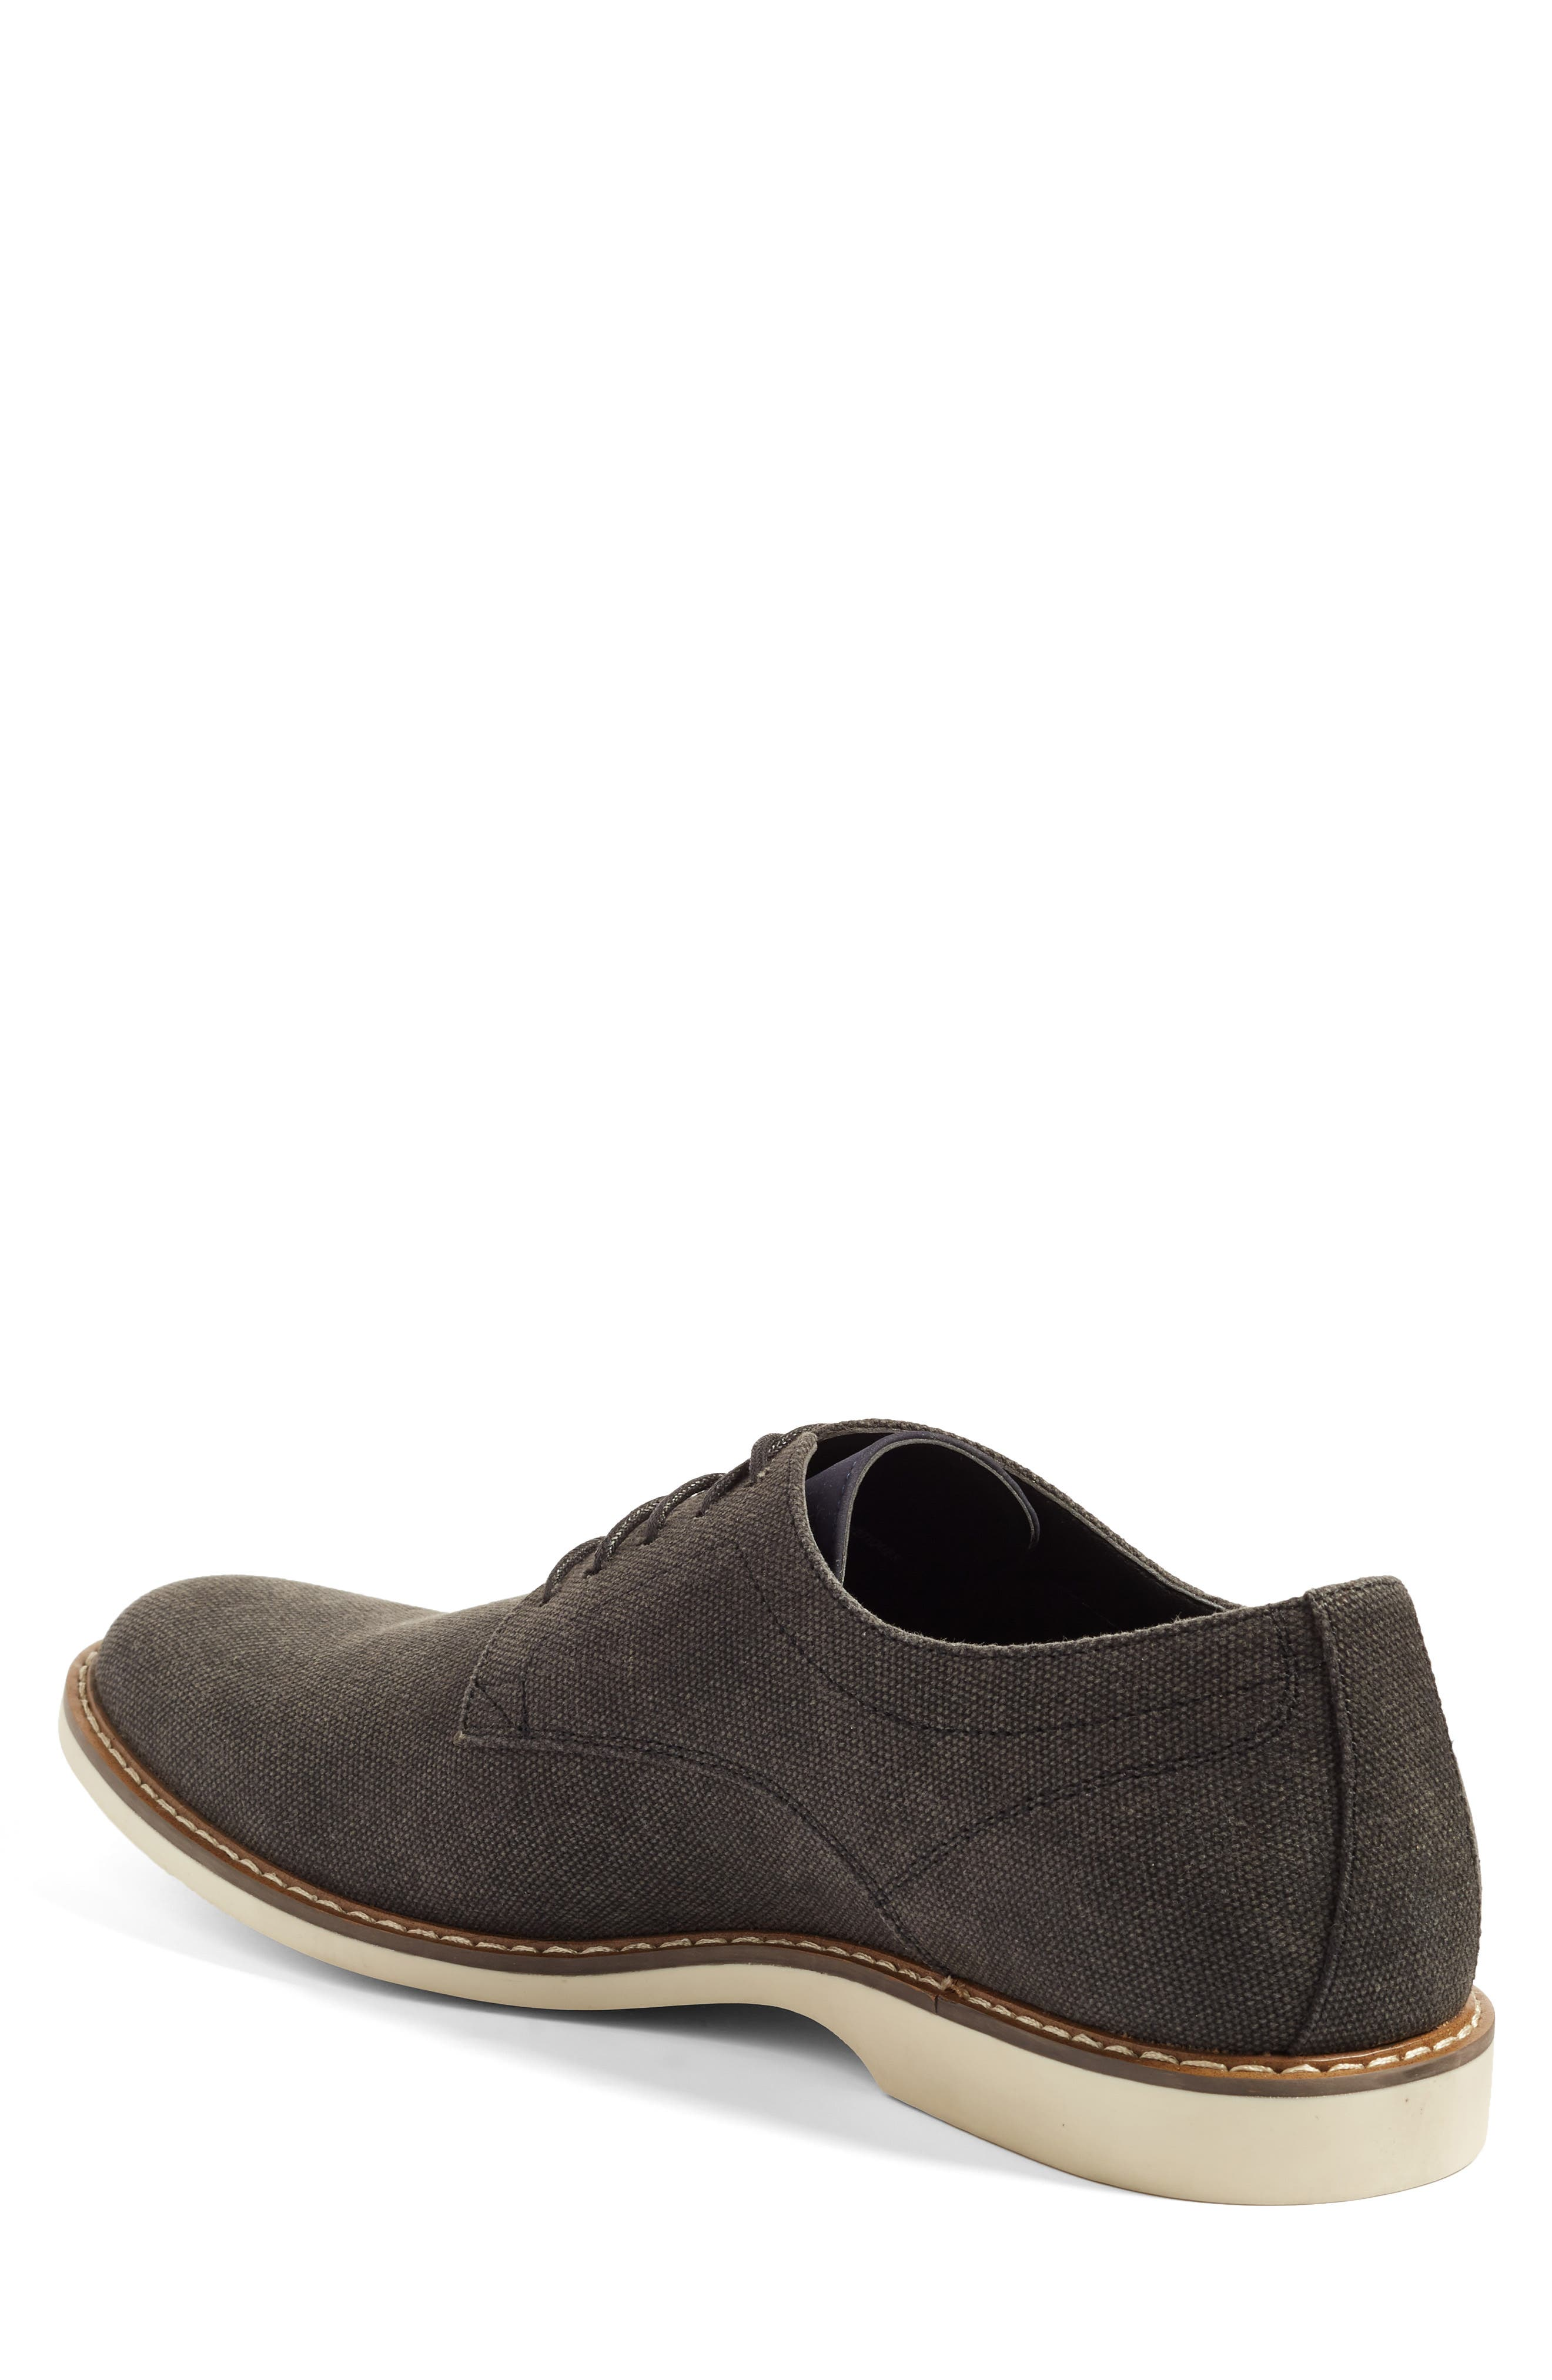 Austin Buck Shoe,                             Alternate thumbnail 2, color,                             BLACK CANVAS